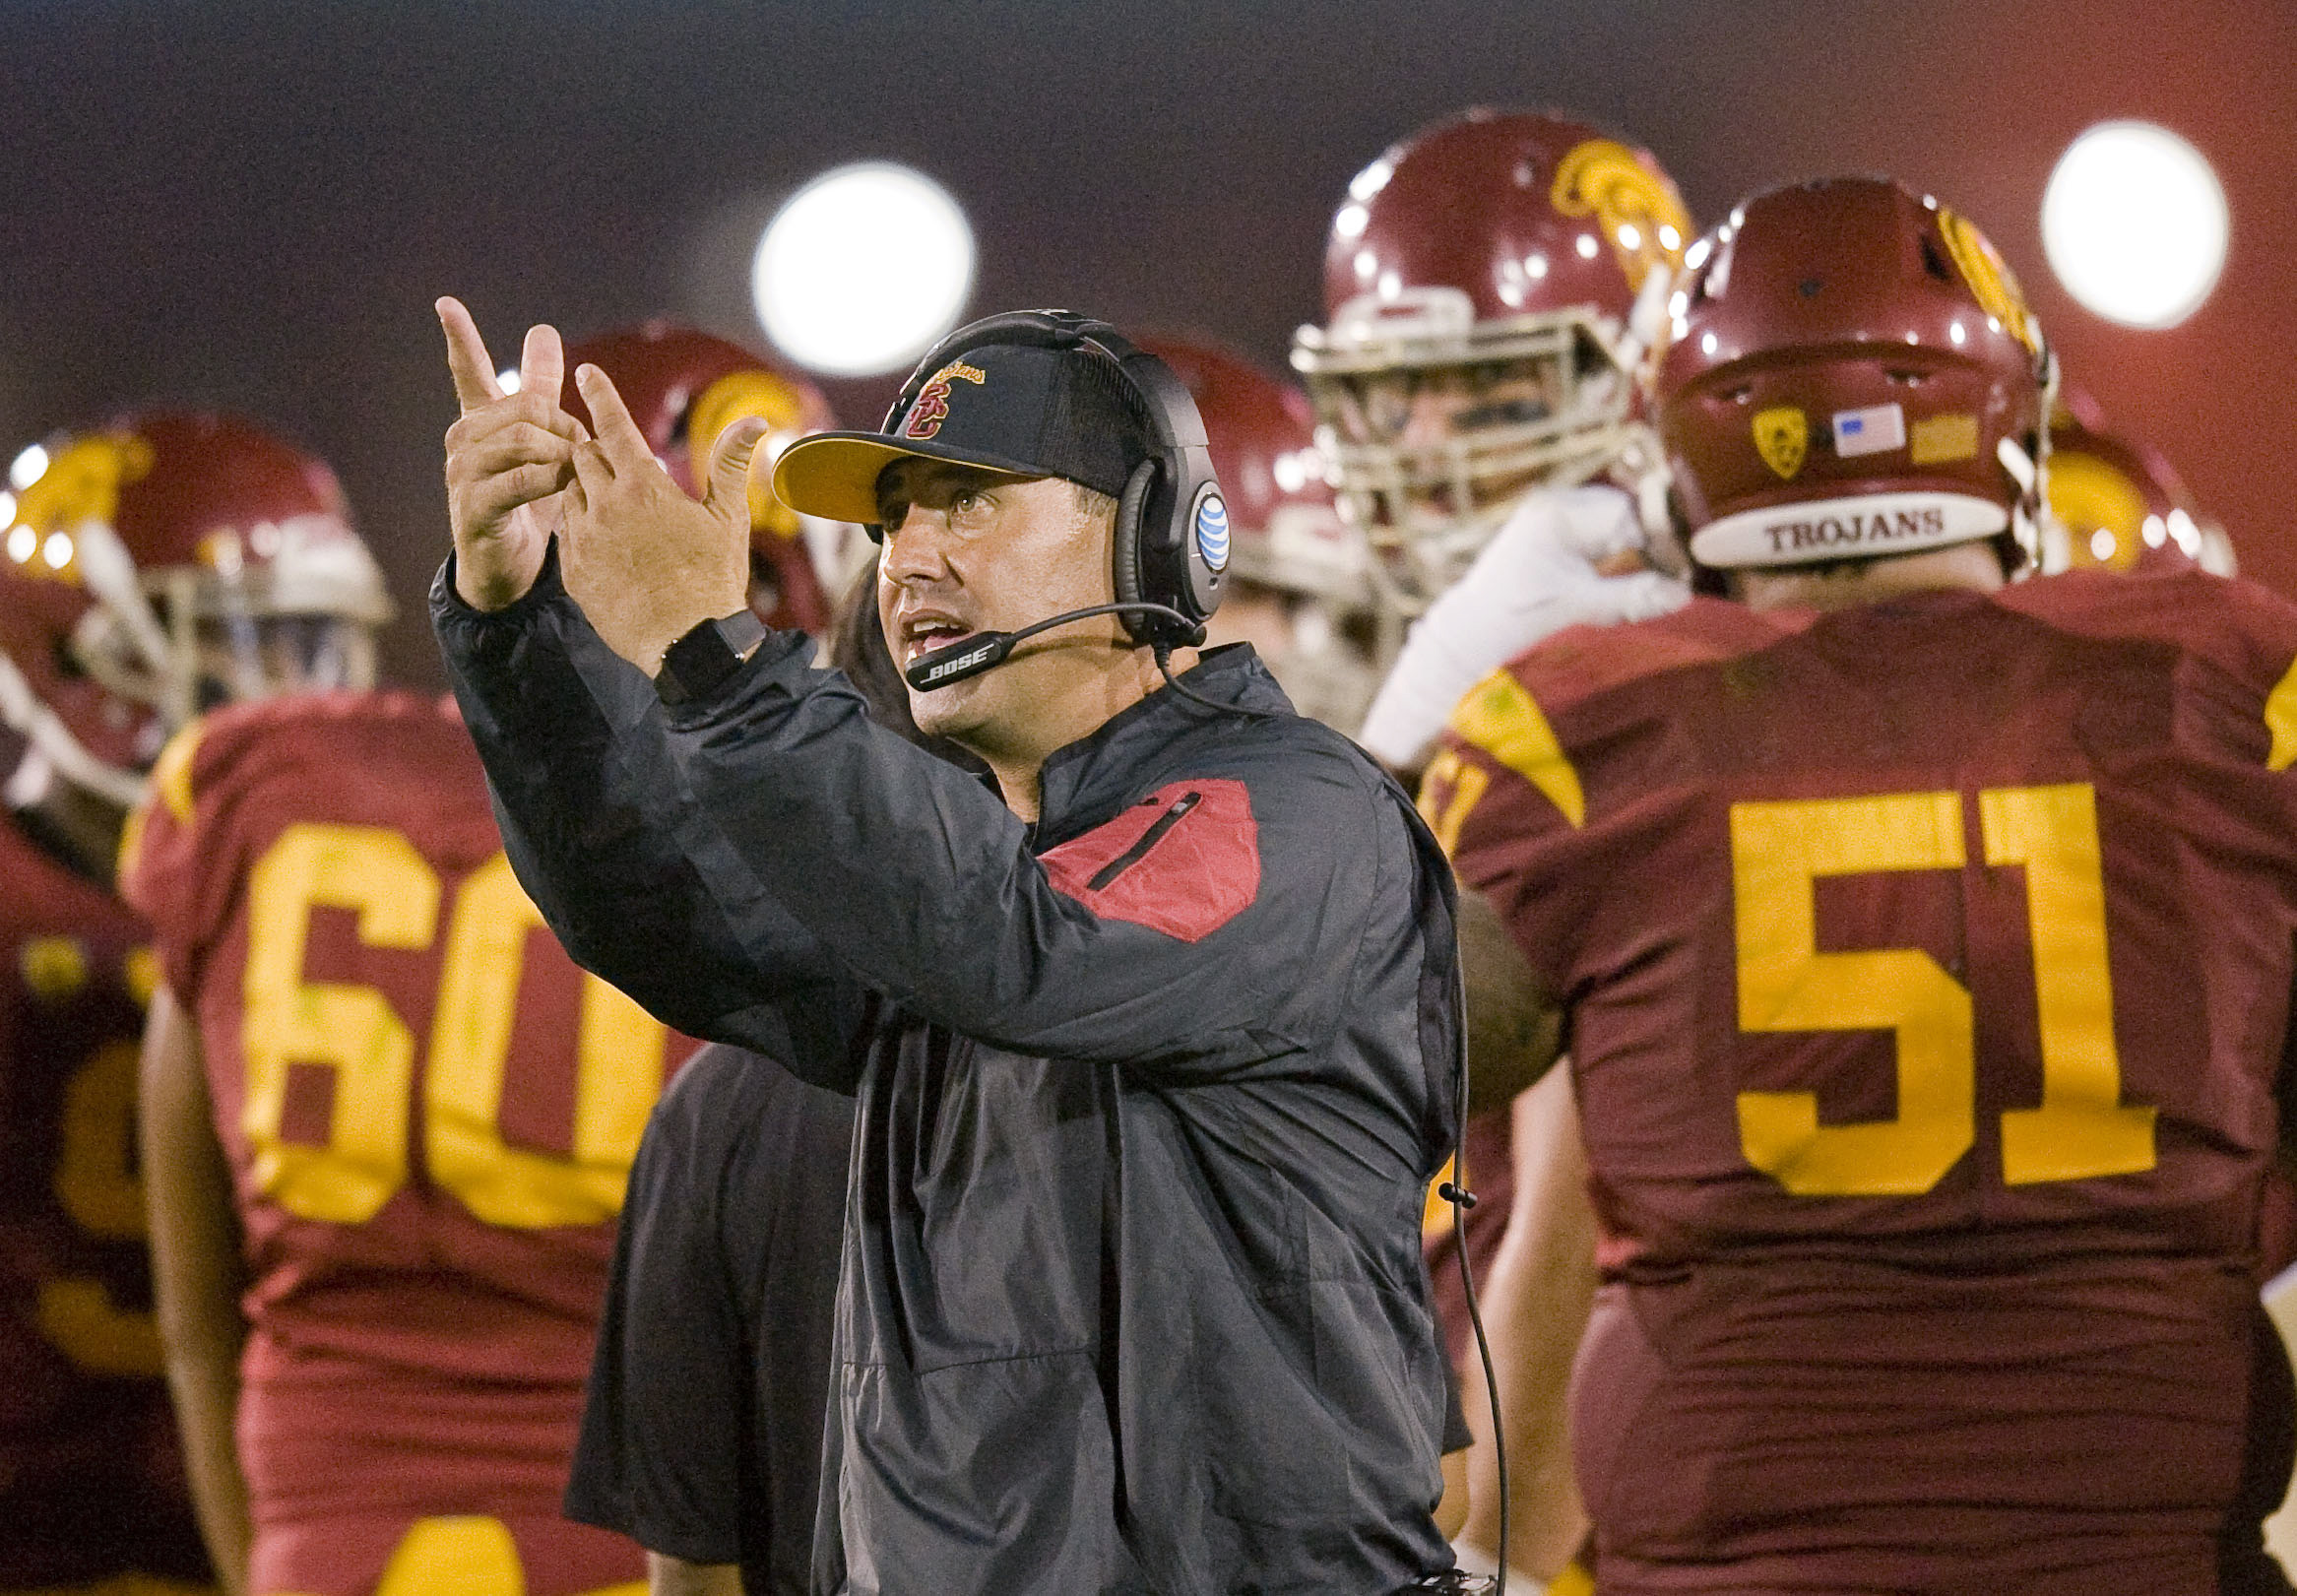 Southern California coach Steve Sarkisian reacts to a replay on the scoreboard during a break in the action against Washington in an NCAA college football game Thursday, Oct. 8, 2015, in Los Angeles. Washington won 17-12. (Paul Rodriguez/The Orange County